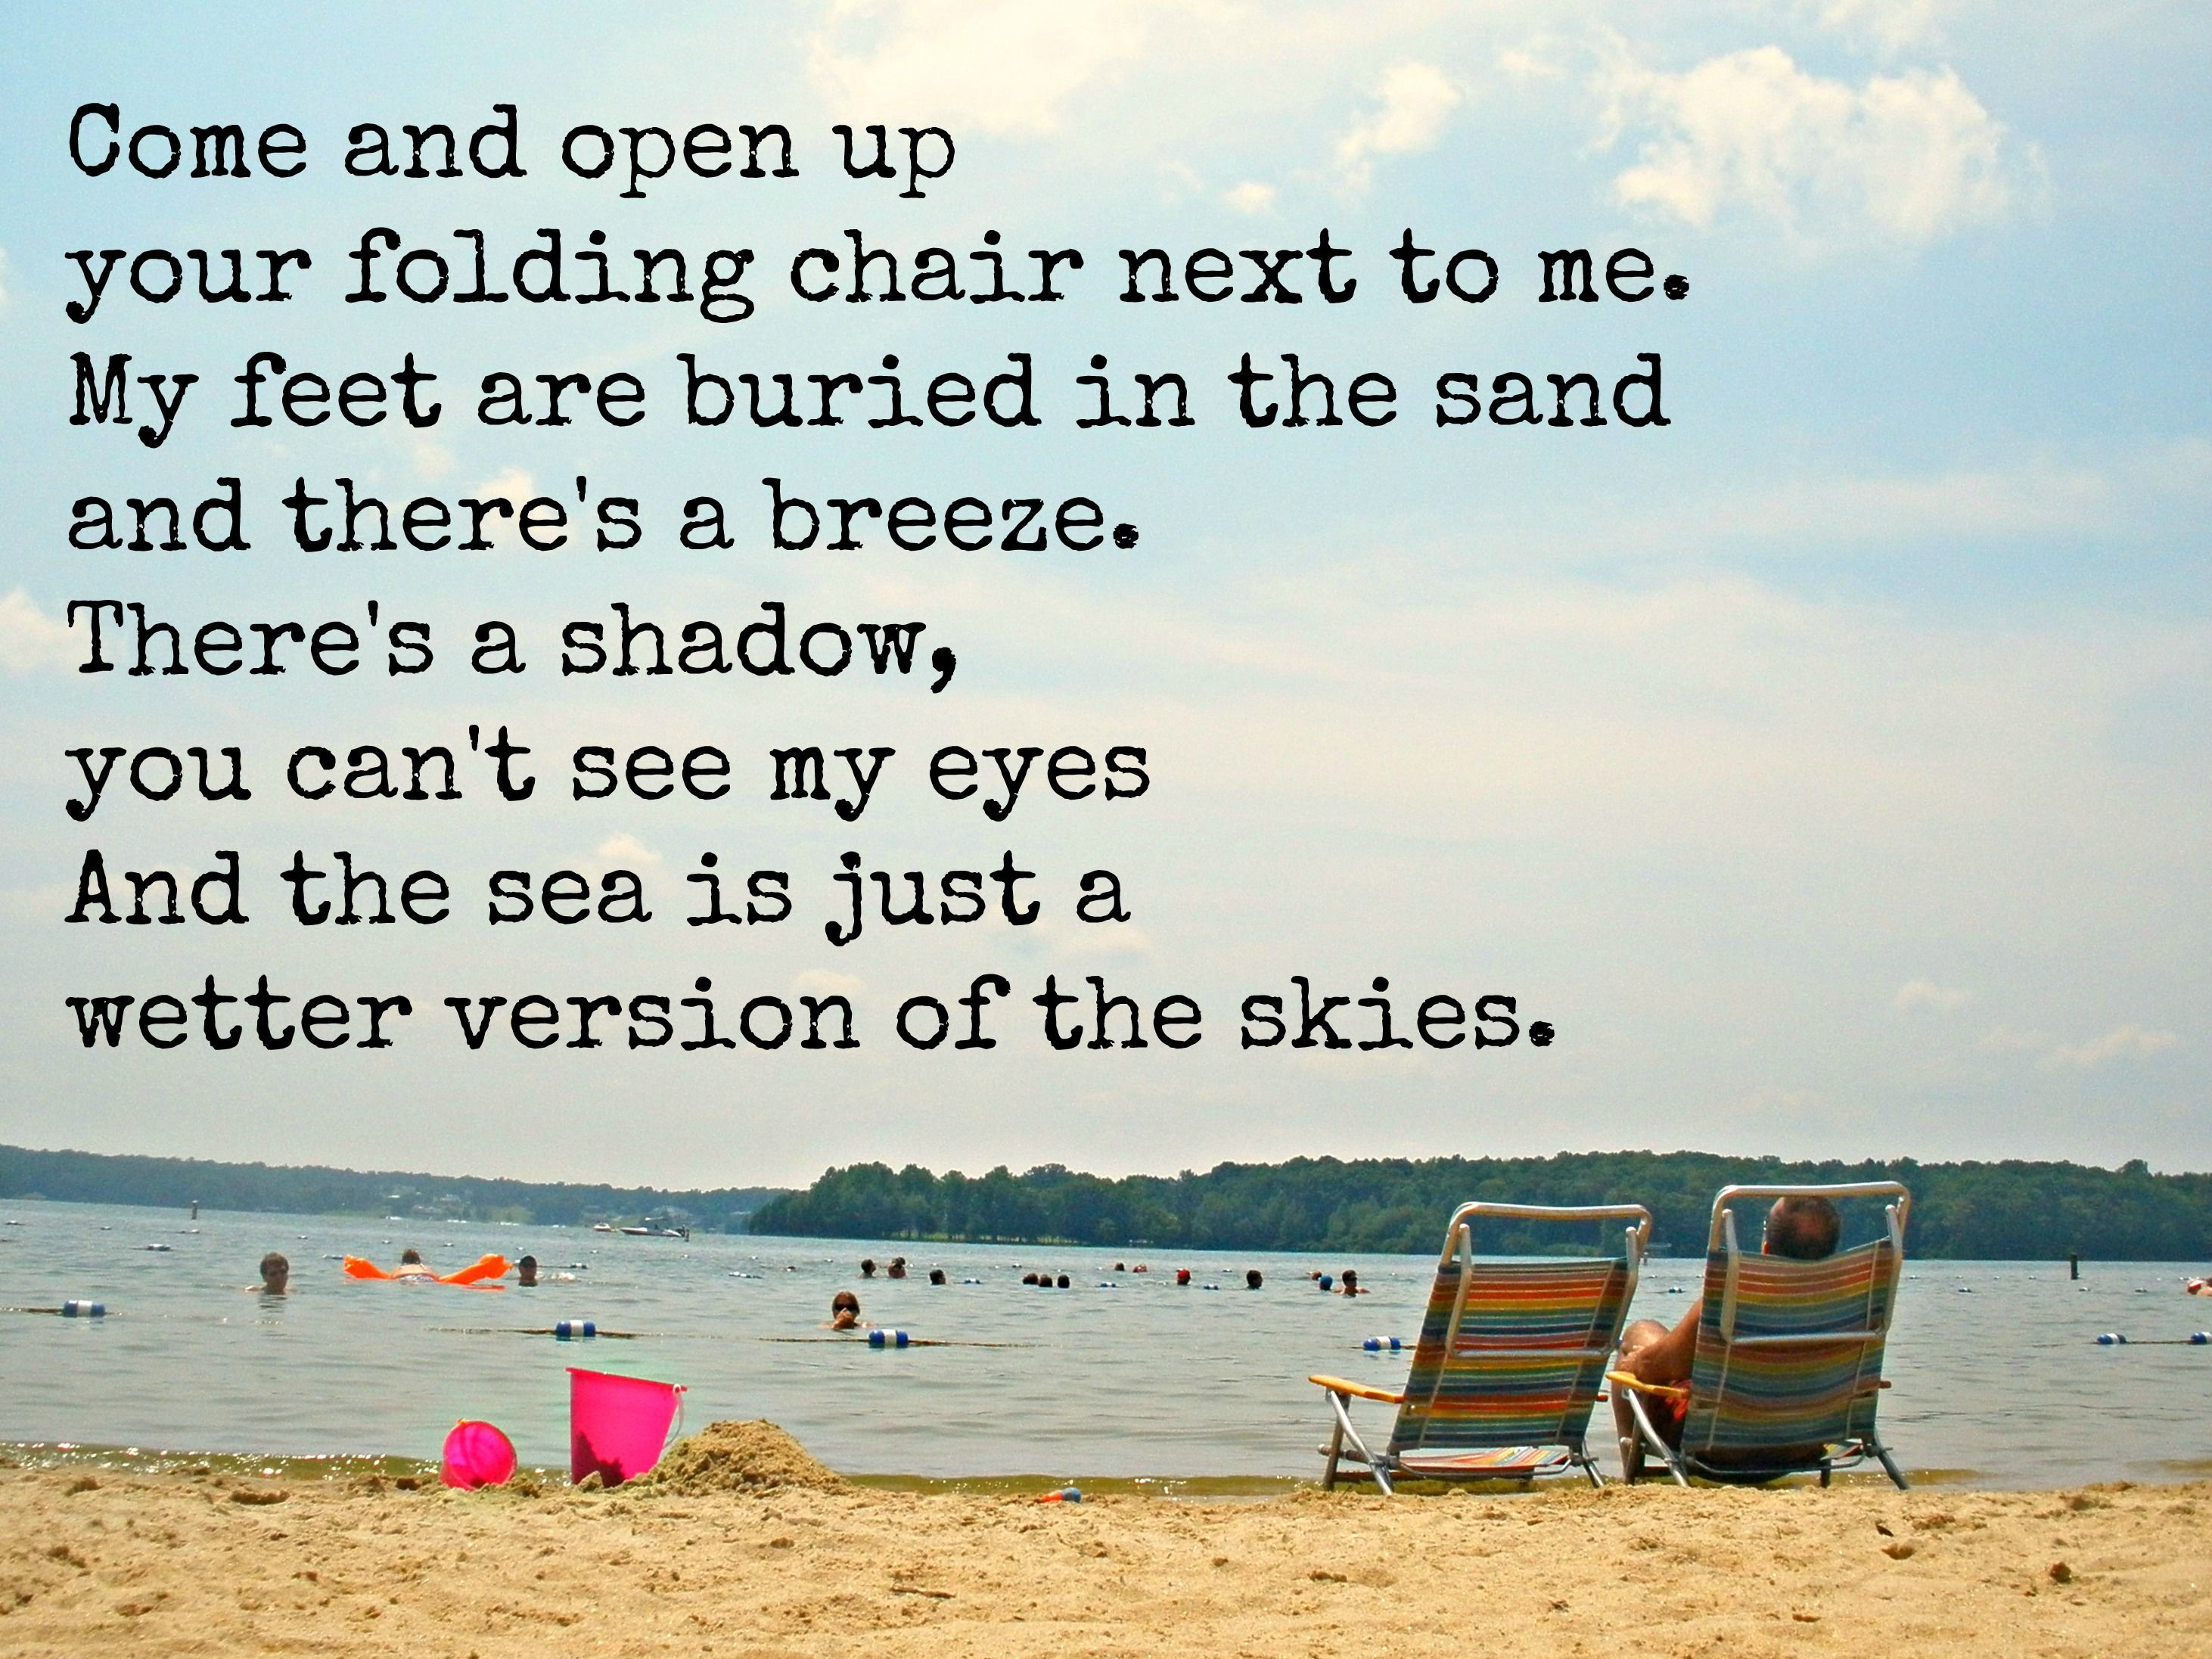 Folding Chair Regina Spektor Lyrics Cheap Tufted And The Sea Is Just A Wetter Version Of Sky